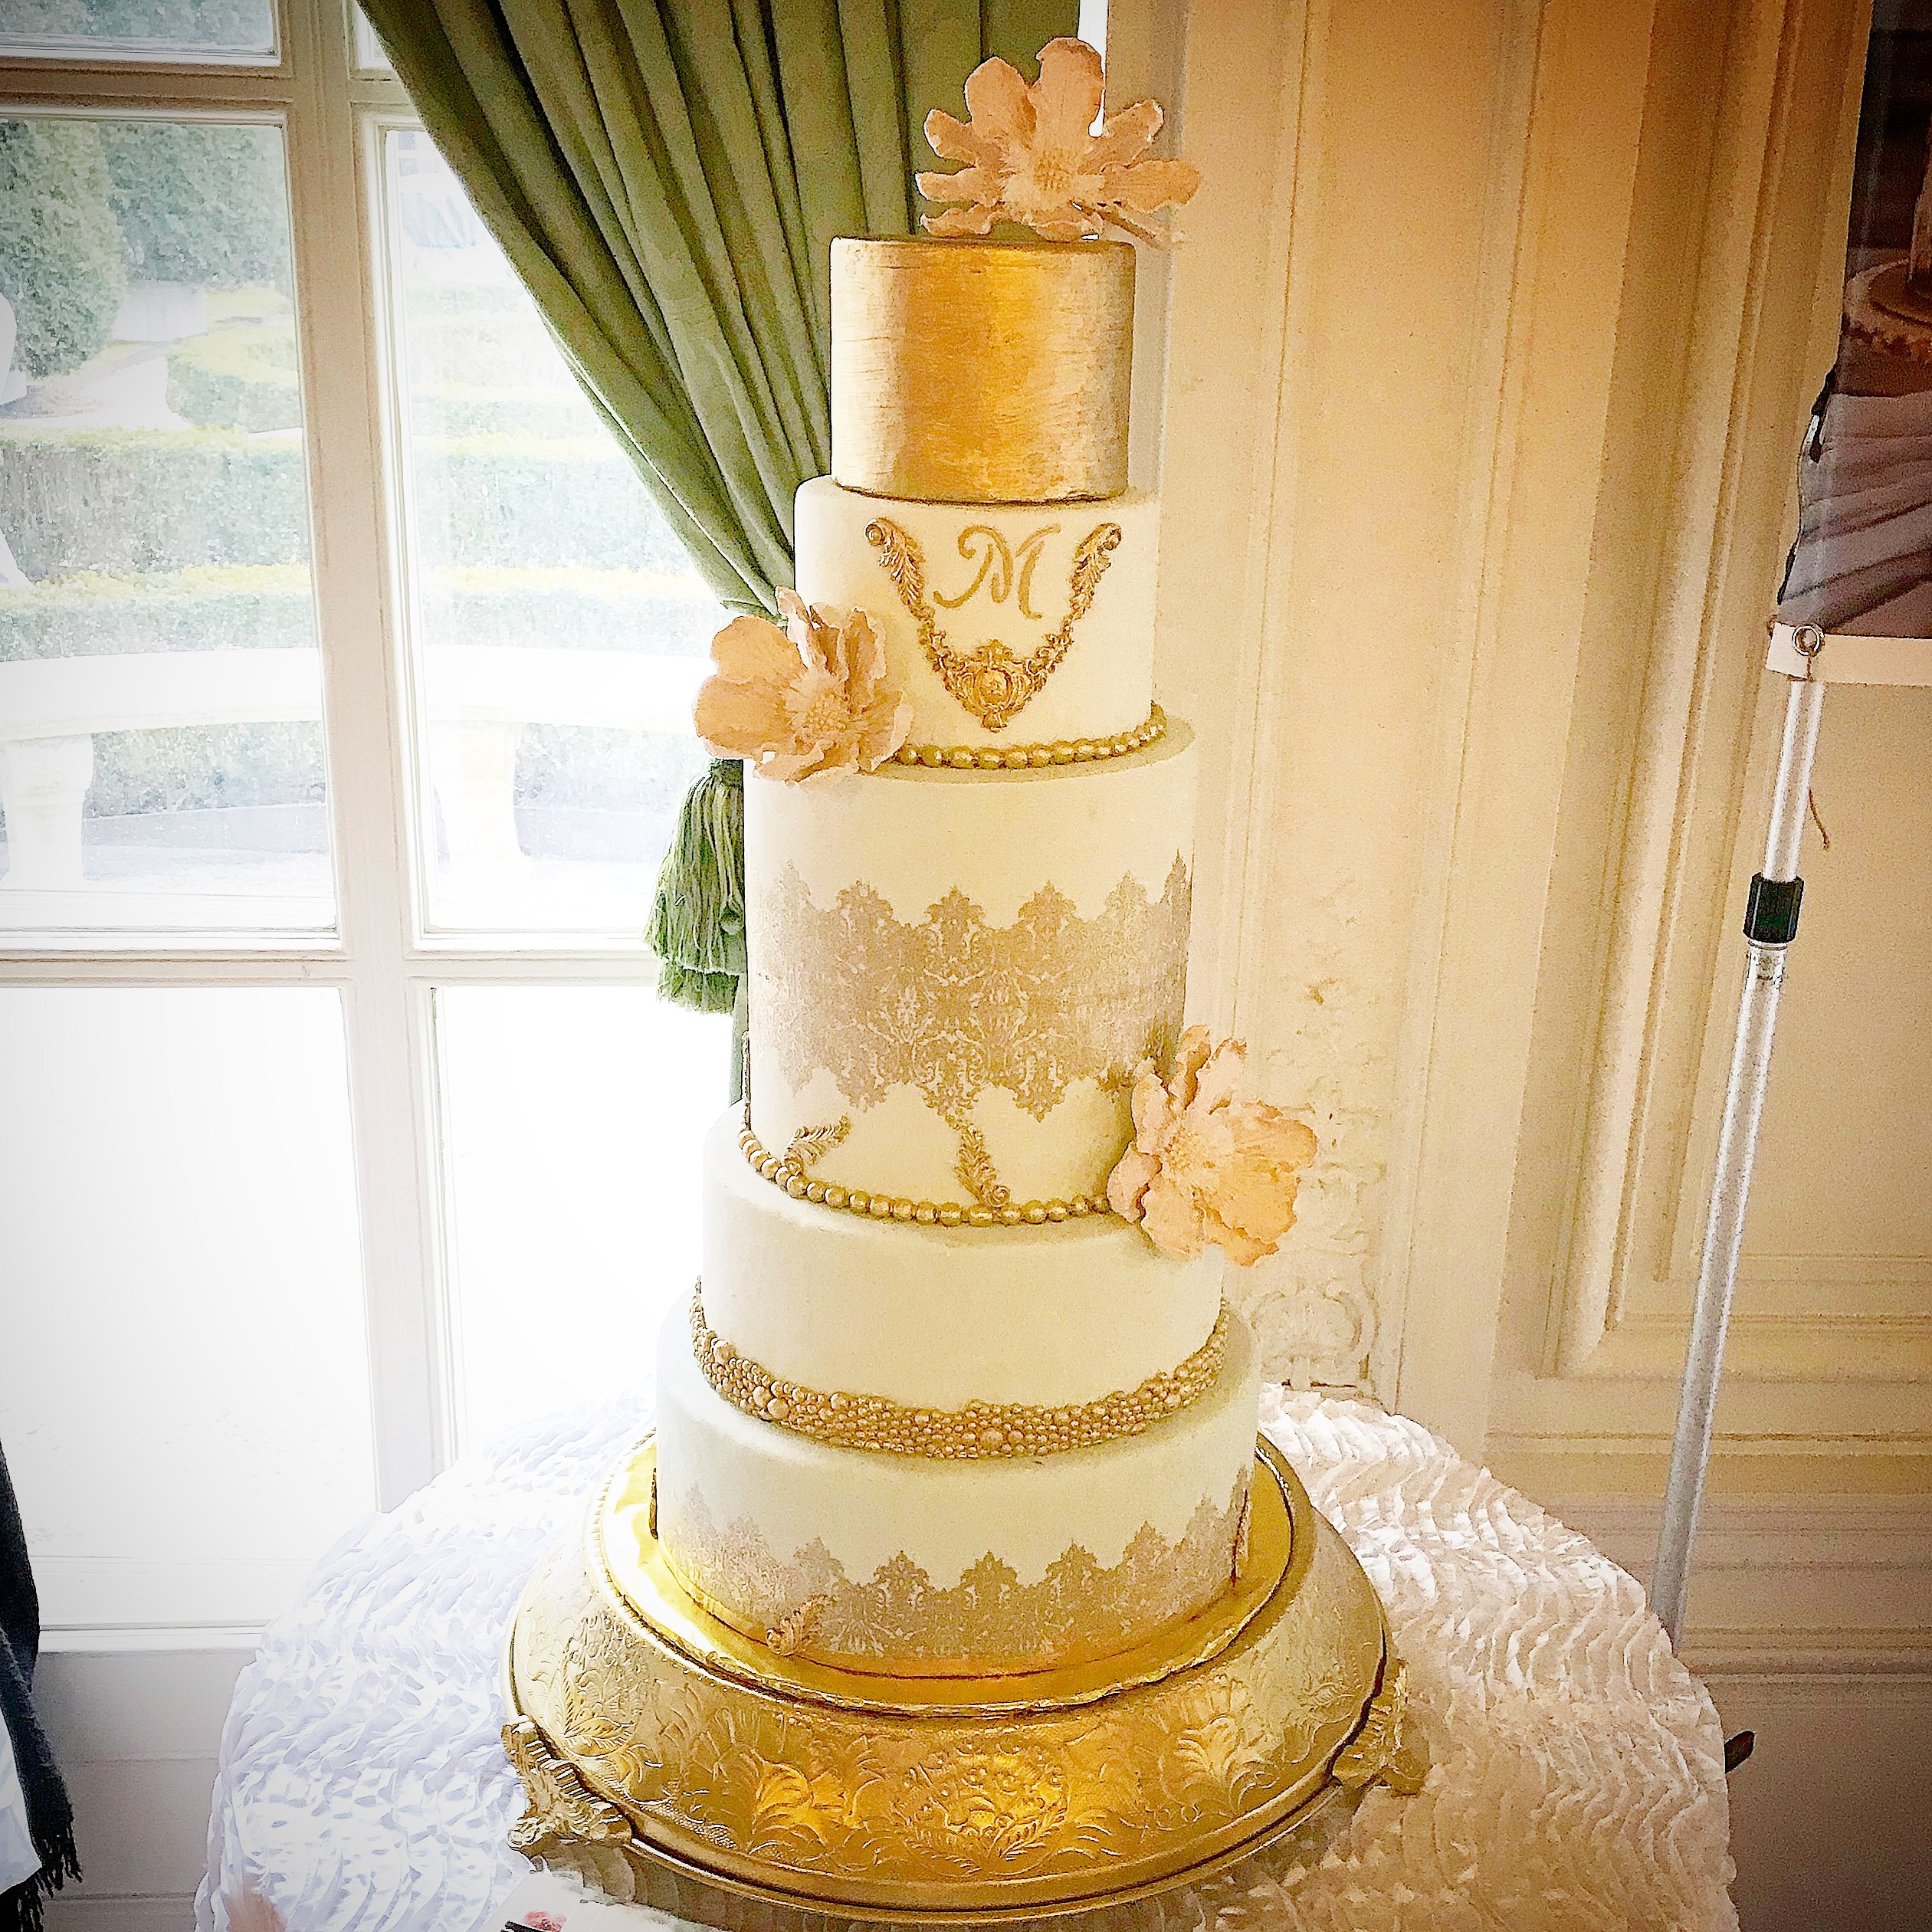 The Rosecliff Mansion Wedding Cake